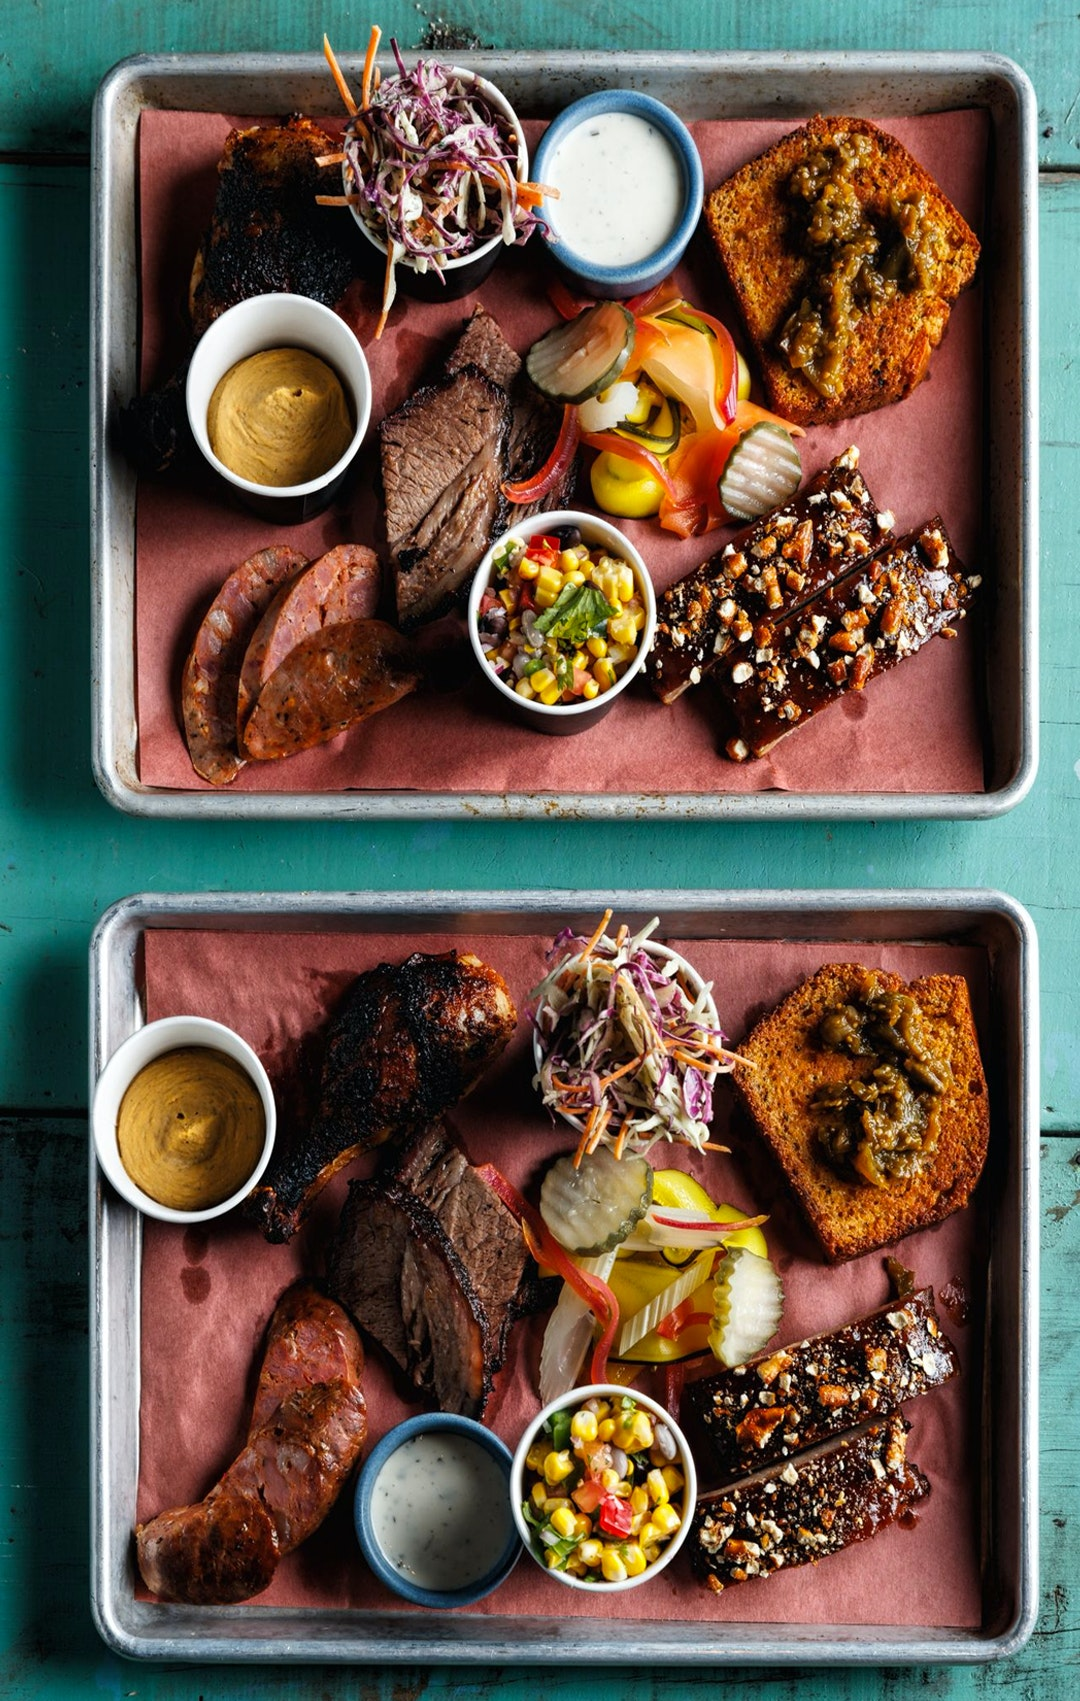 platter of slow cooked meats with sides from nola meathouse